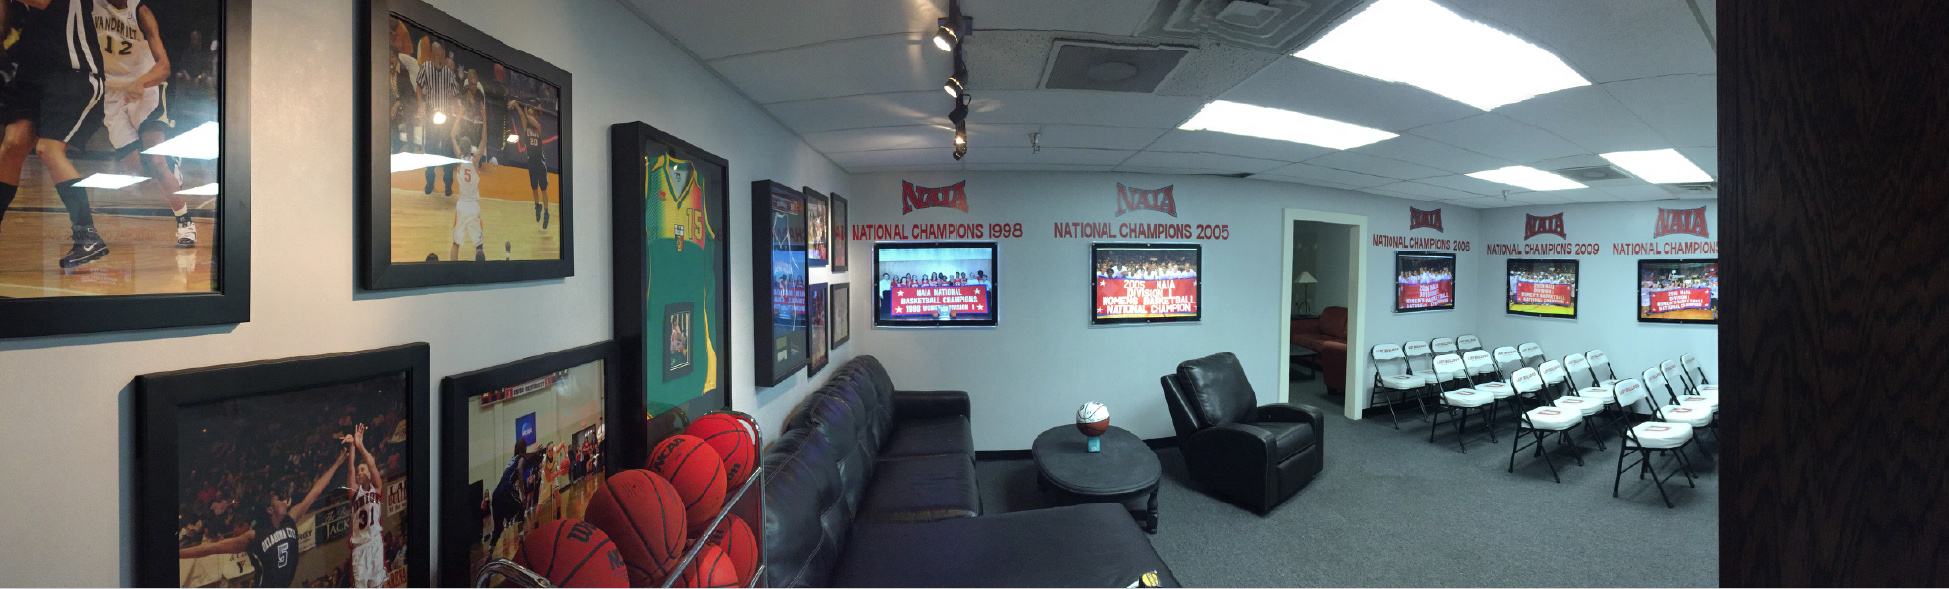 Before-Union-University_Womens-Basketball-Locker-Room_Interior-Branding_LSIGraphics_Memphis-TN ..